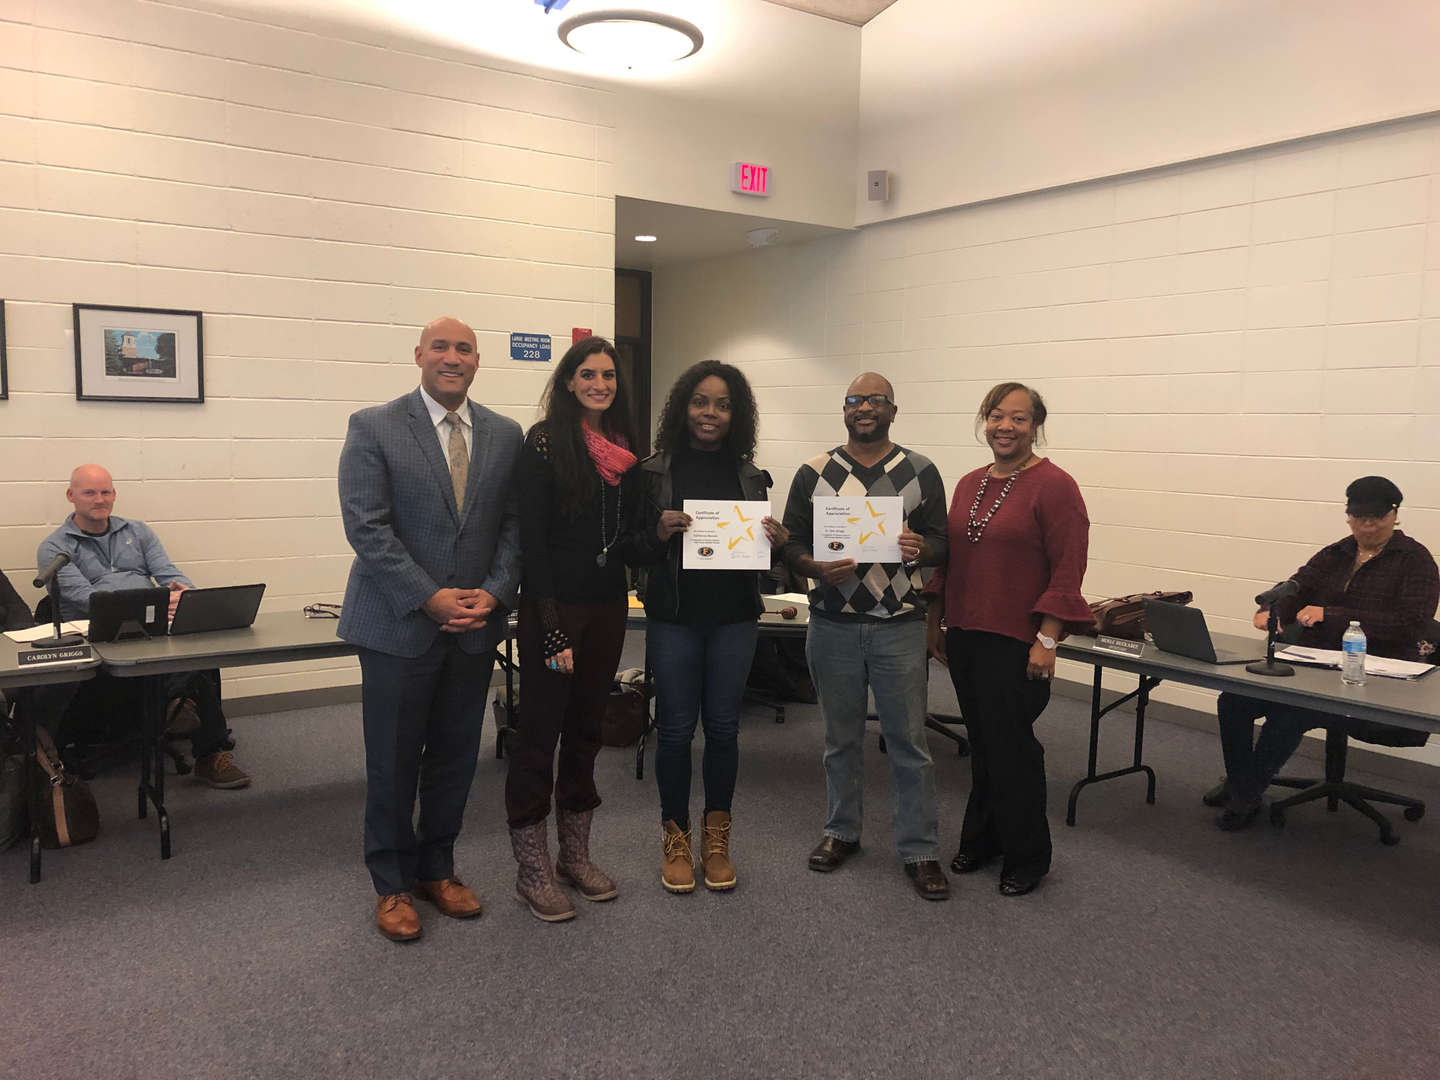 Western Avenue's Mathlete Coaches were recognized at the November 26th Board meeting.  Shown Ms. TaShawna Bennett and Dr. Stan Griggs.